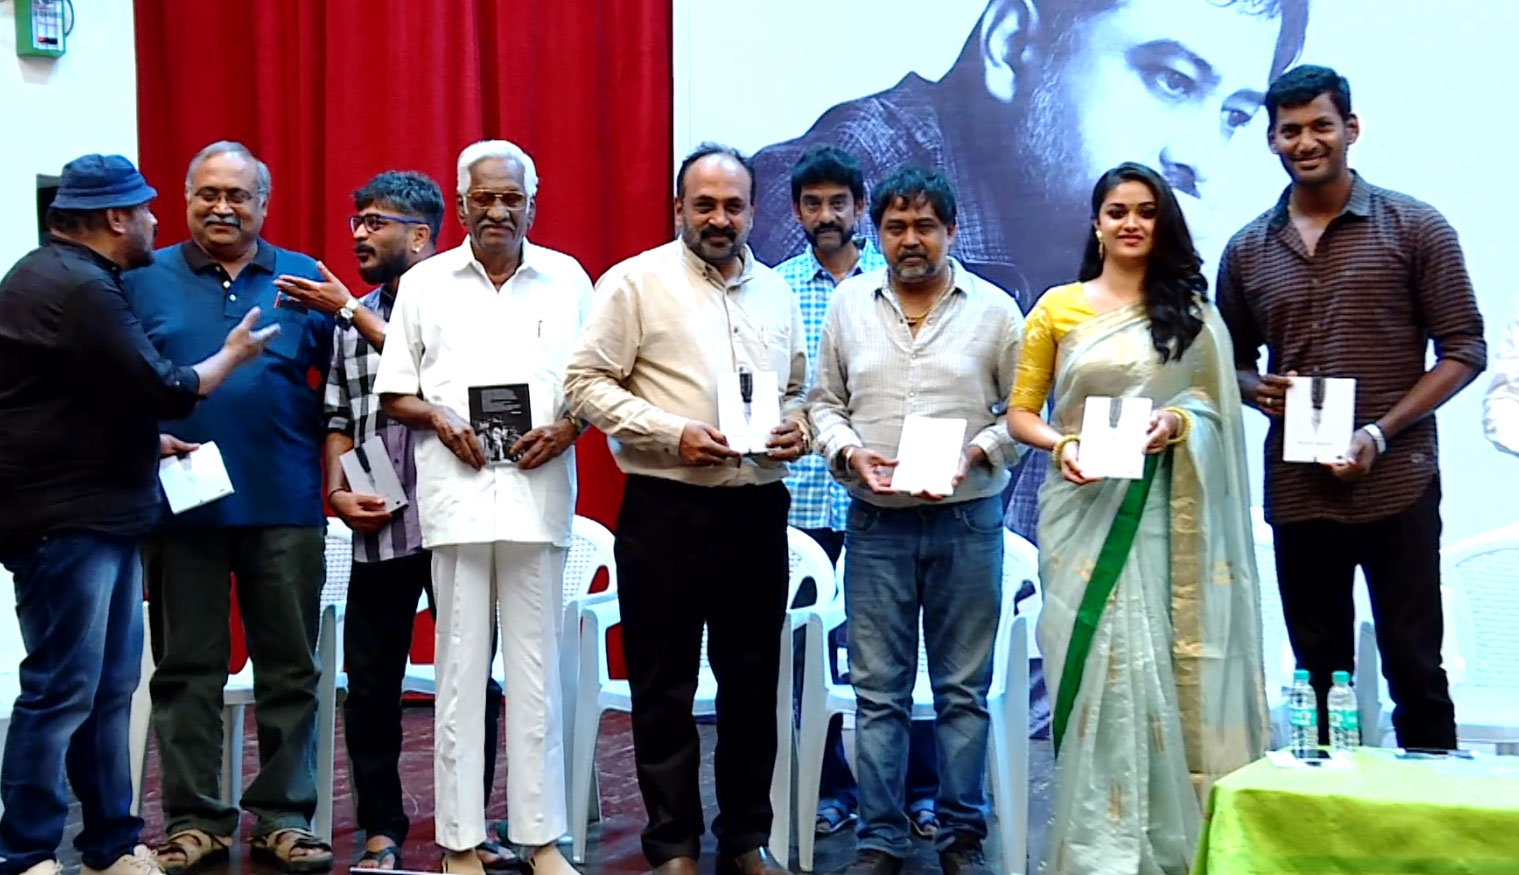 Director Linguswamy's Haiku Poetry Book Released by Vishal